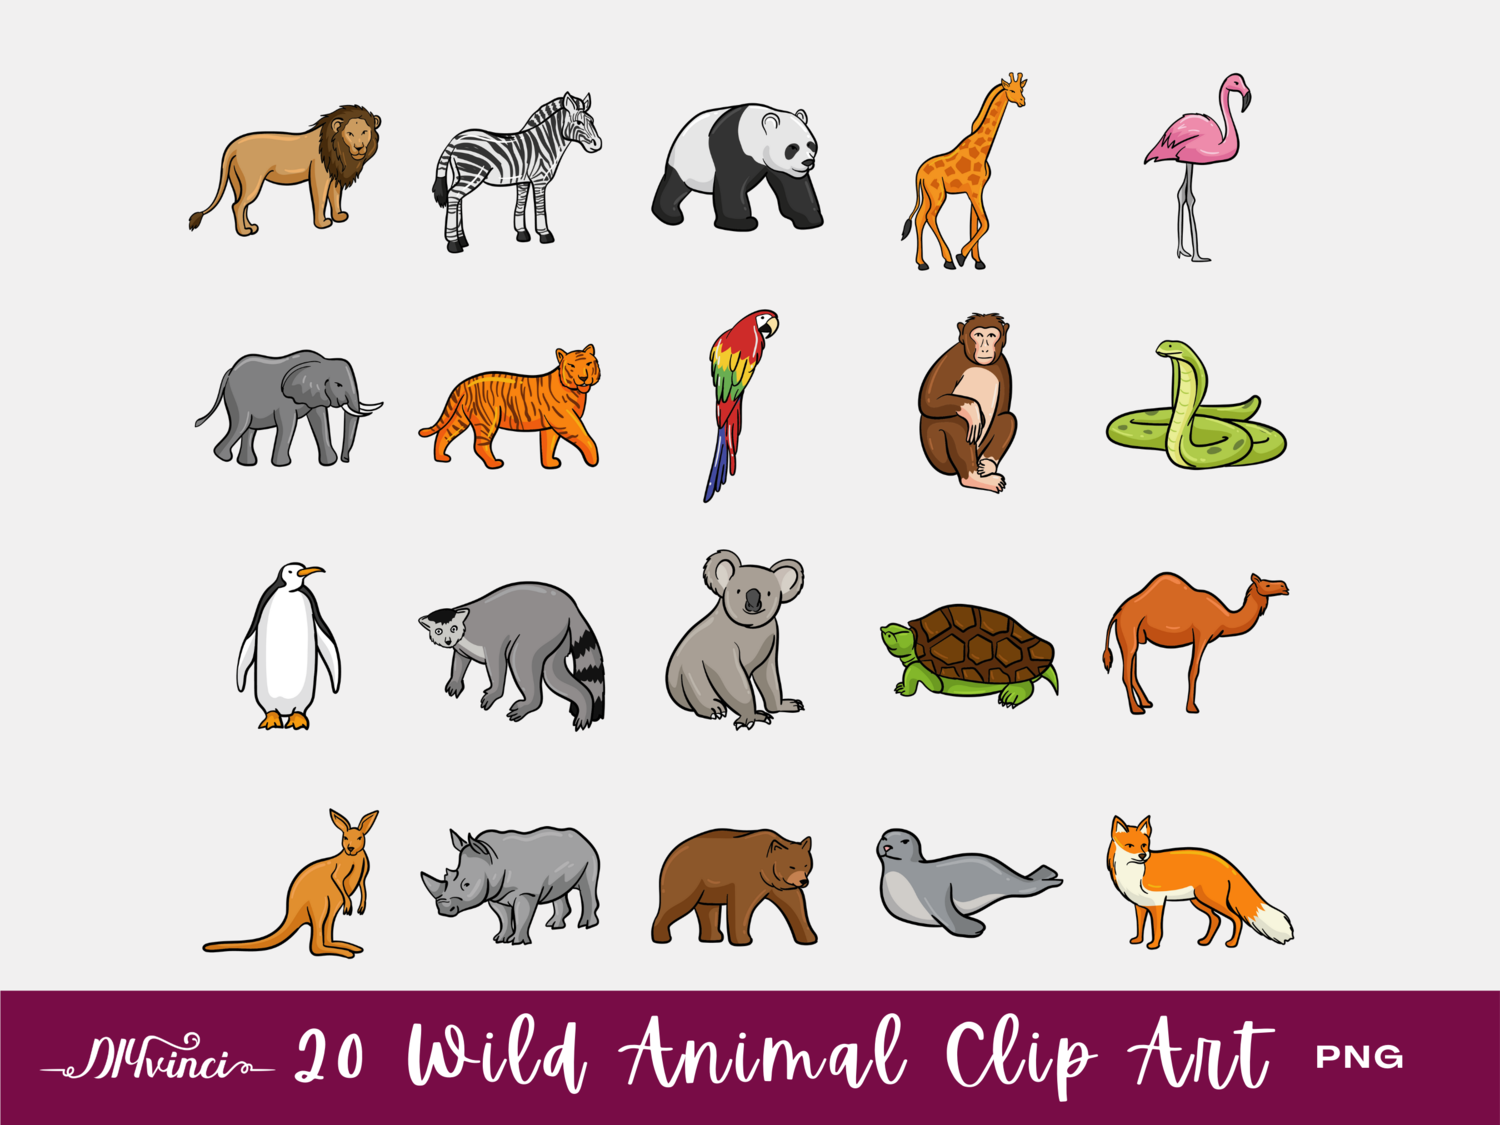 20 Wild Animal Clip Art - PNG - Personal & Commercial Use